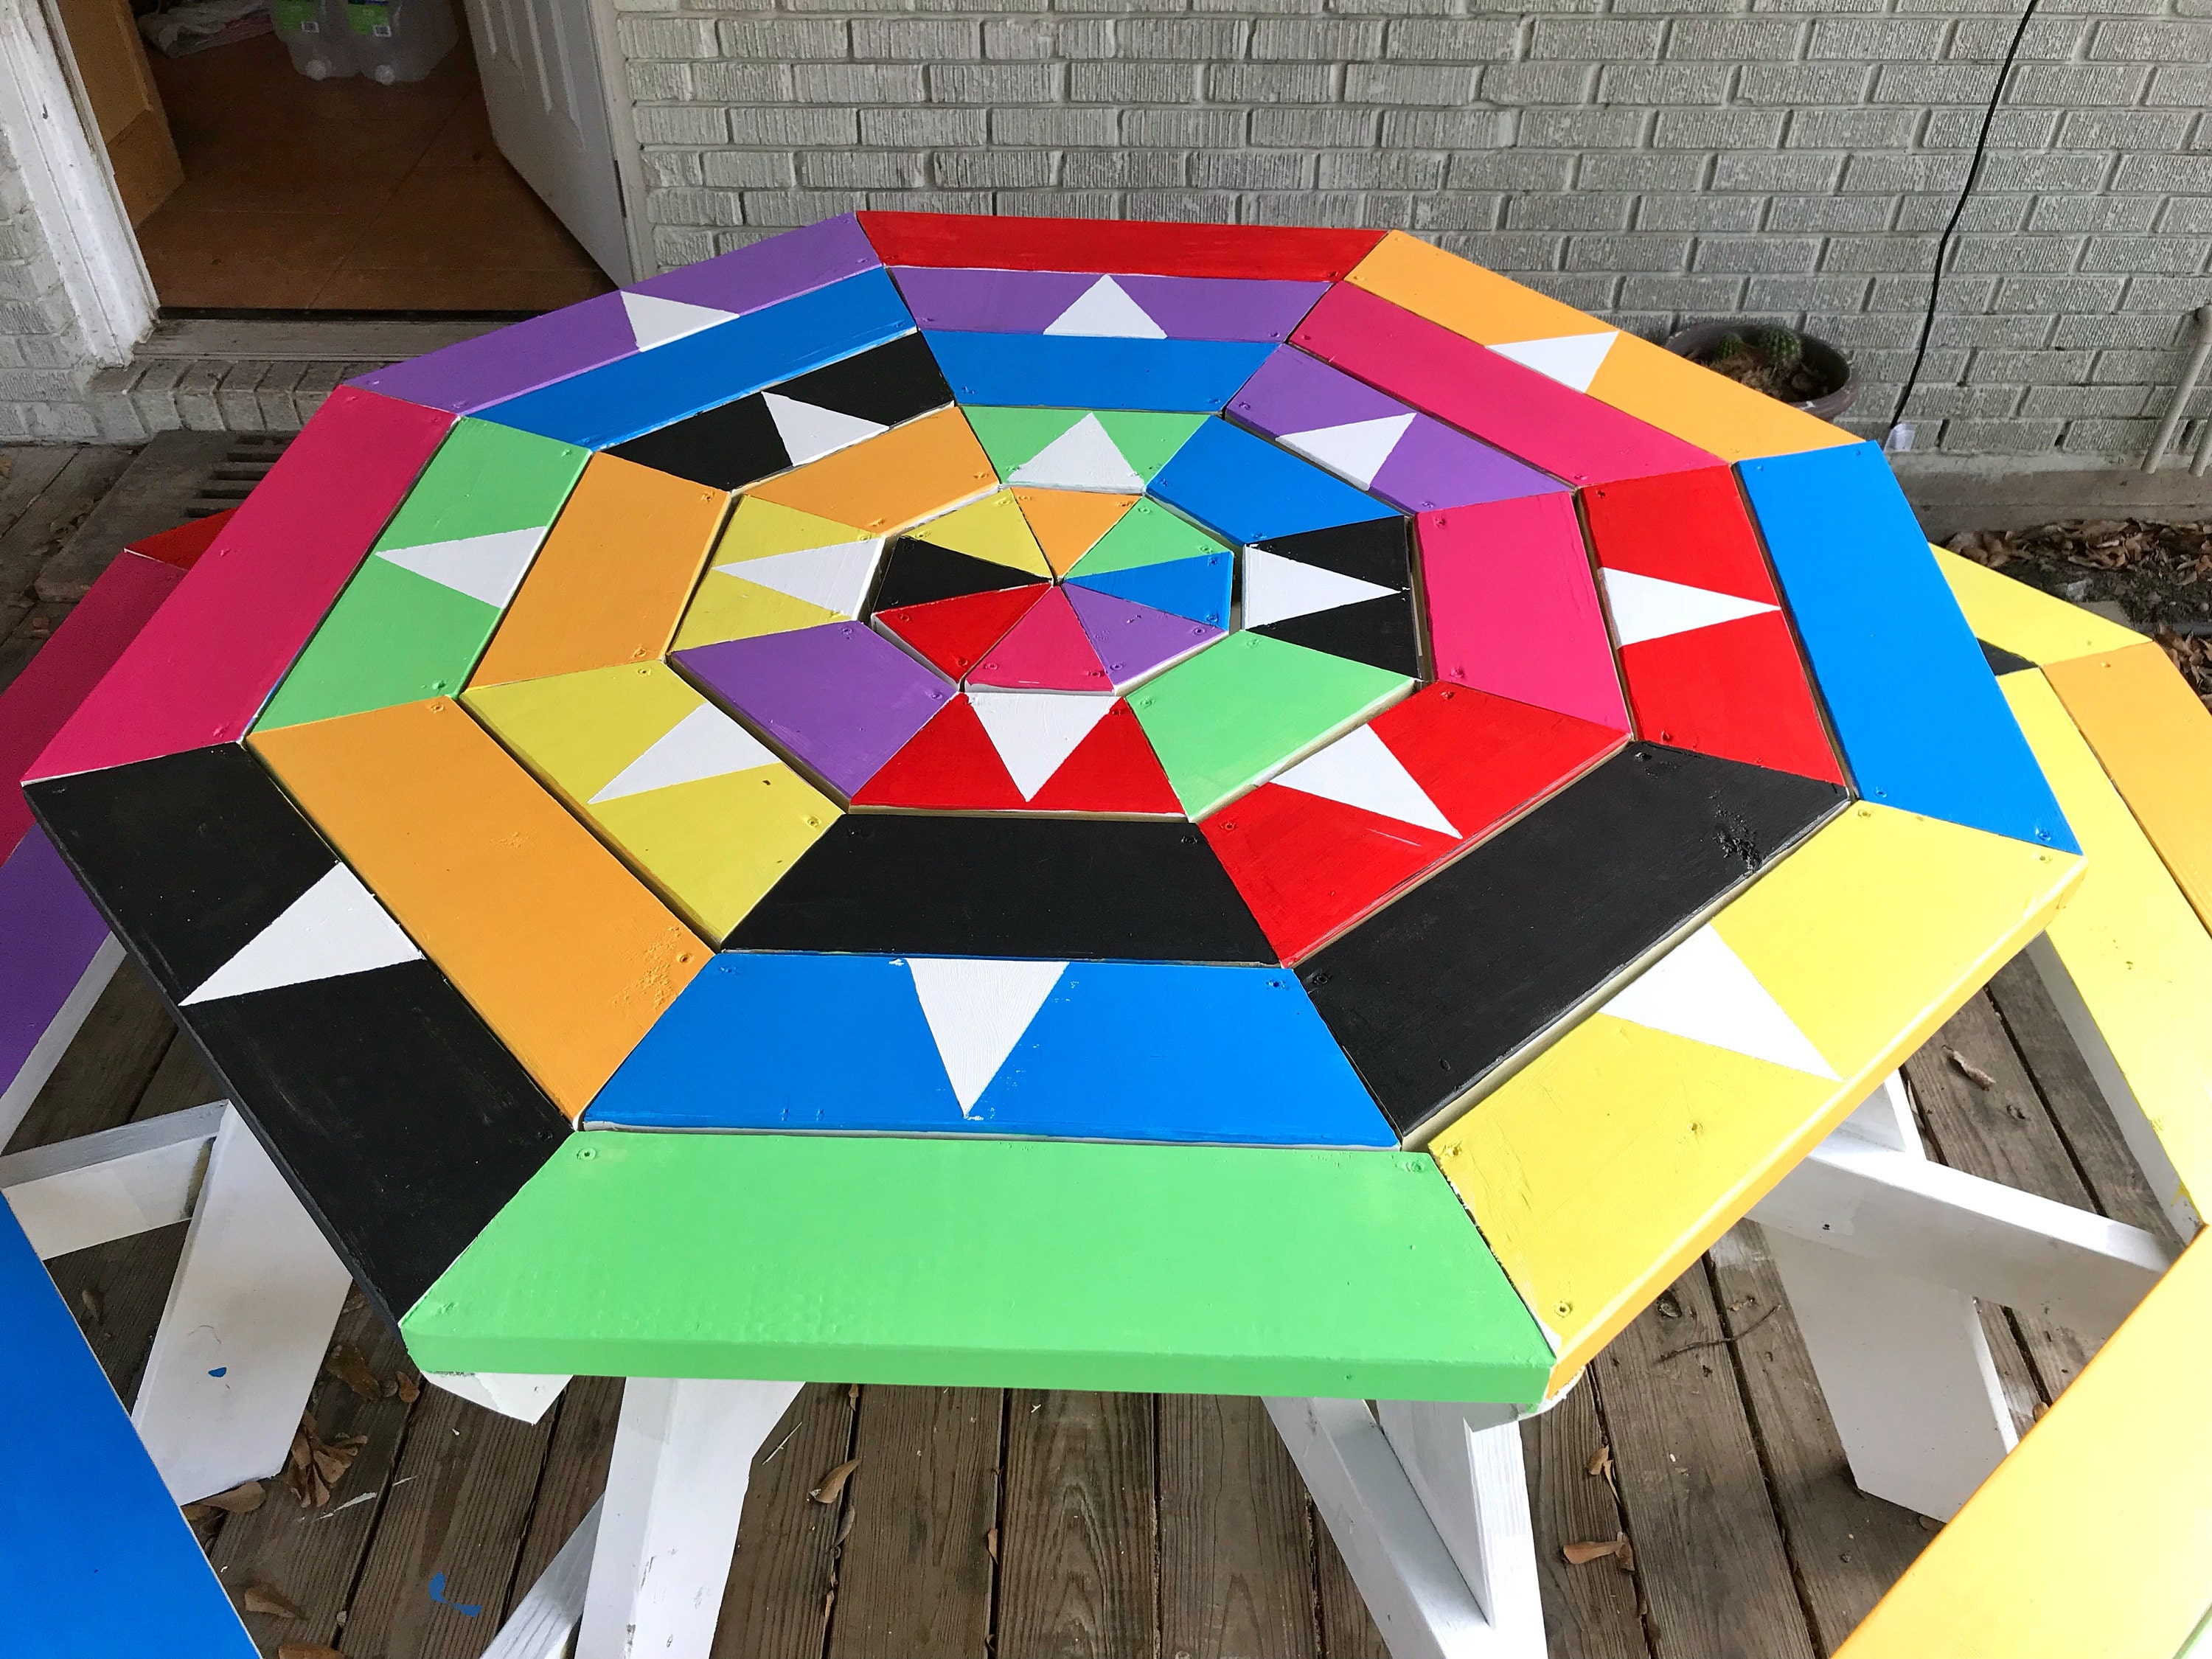 Octagonal Table